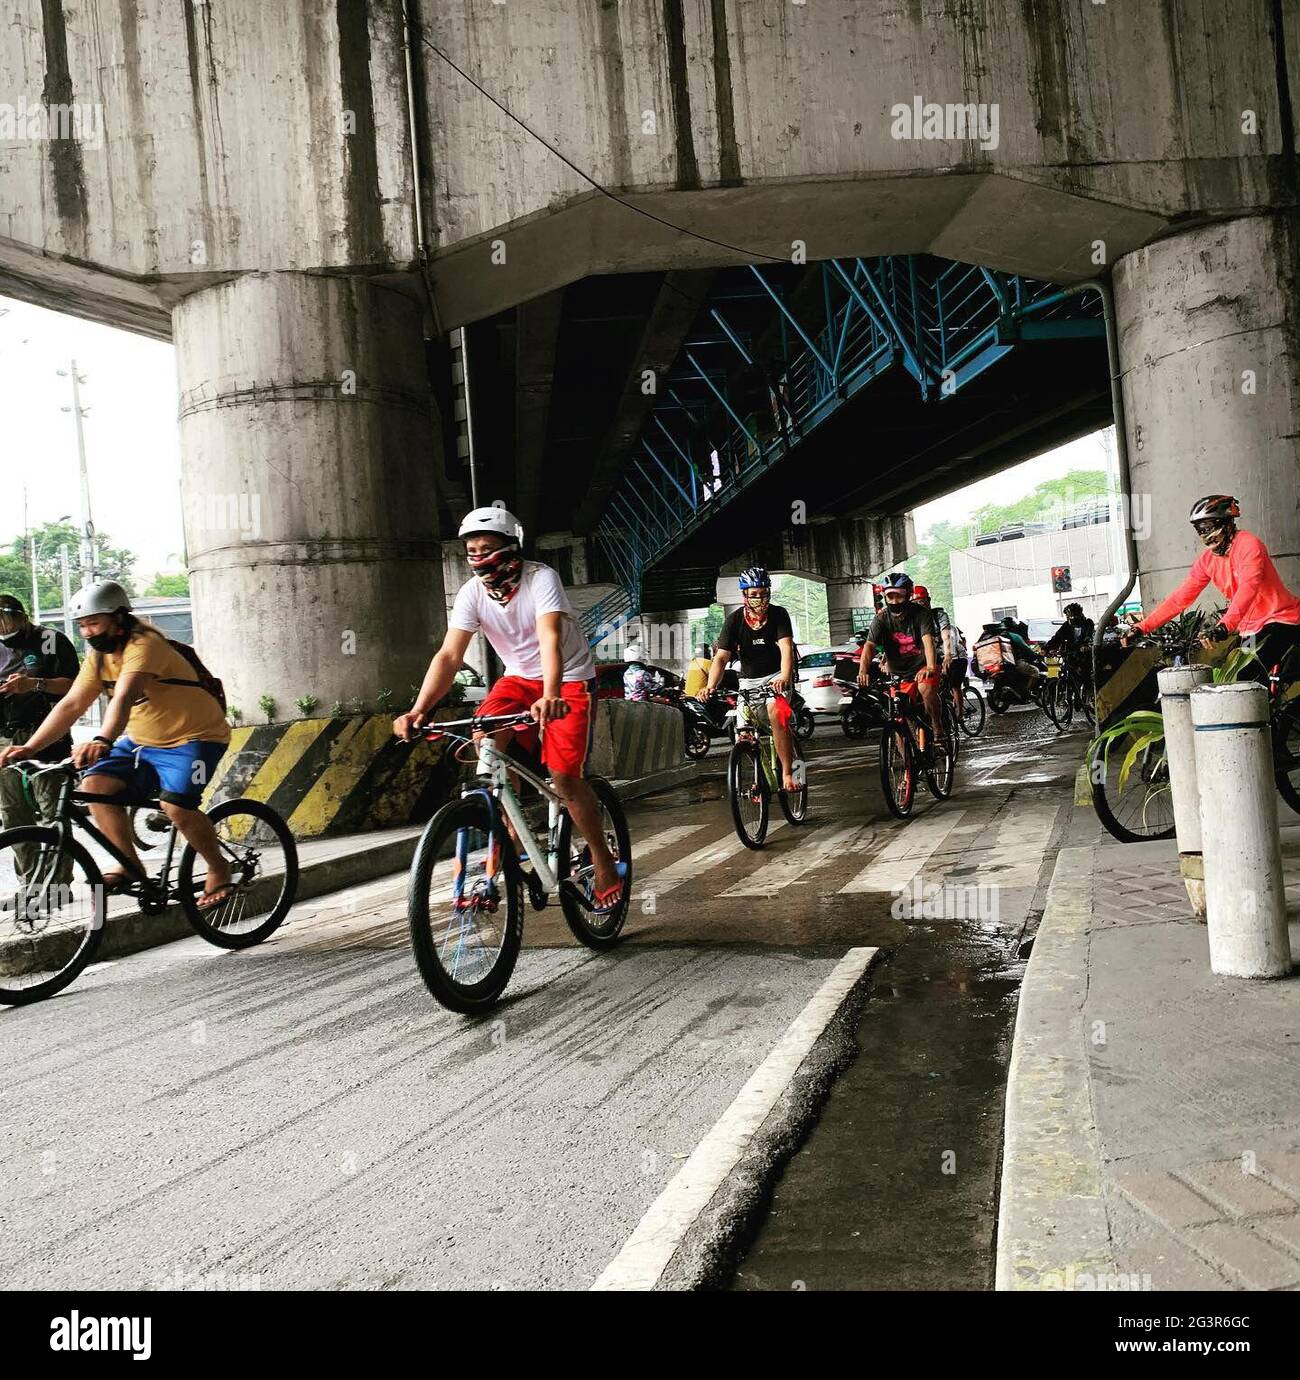 Volunteers count bikes in some of the busiest roads in Metro Manila as they gathered data that will help establish the need for a more safe and efficient bike culture in the country. Philippines. Stock Photo